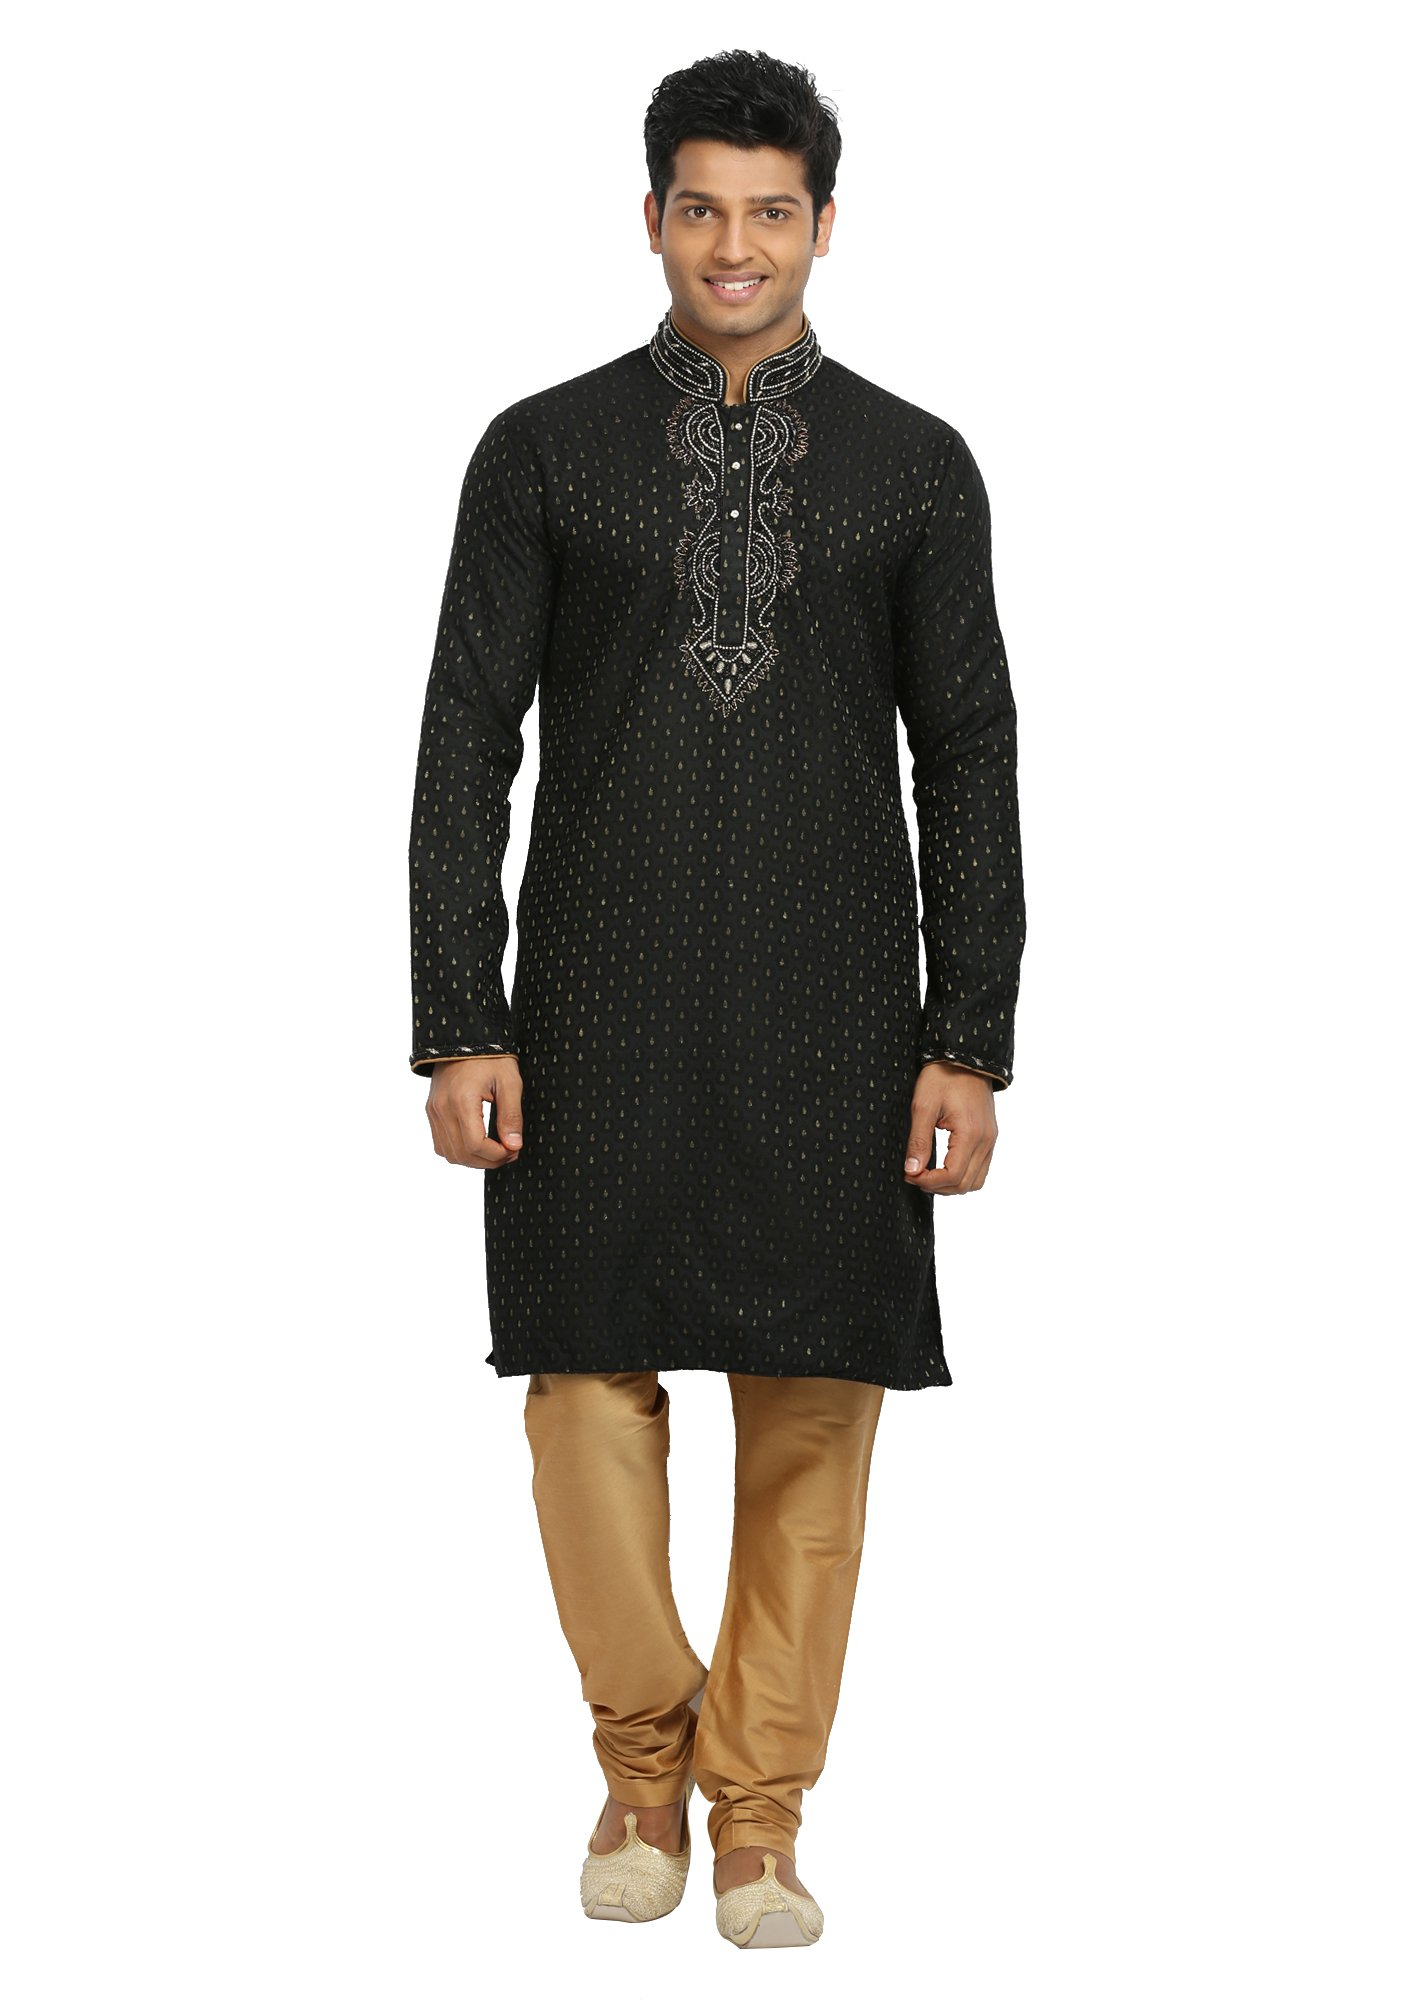 Saris and Things Black Indian Wedding Kurta Pajama Sherwani for Men